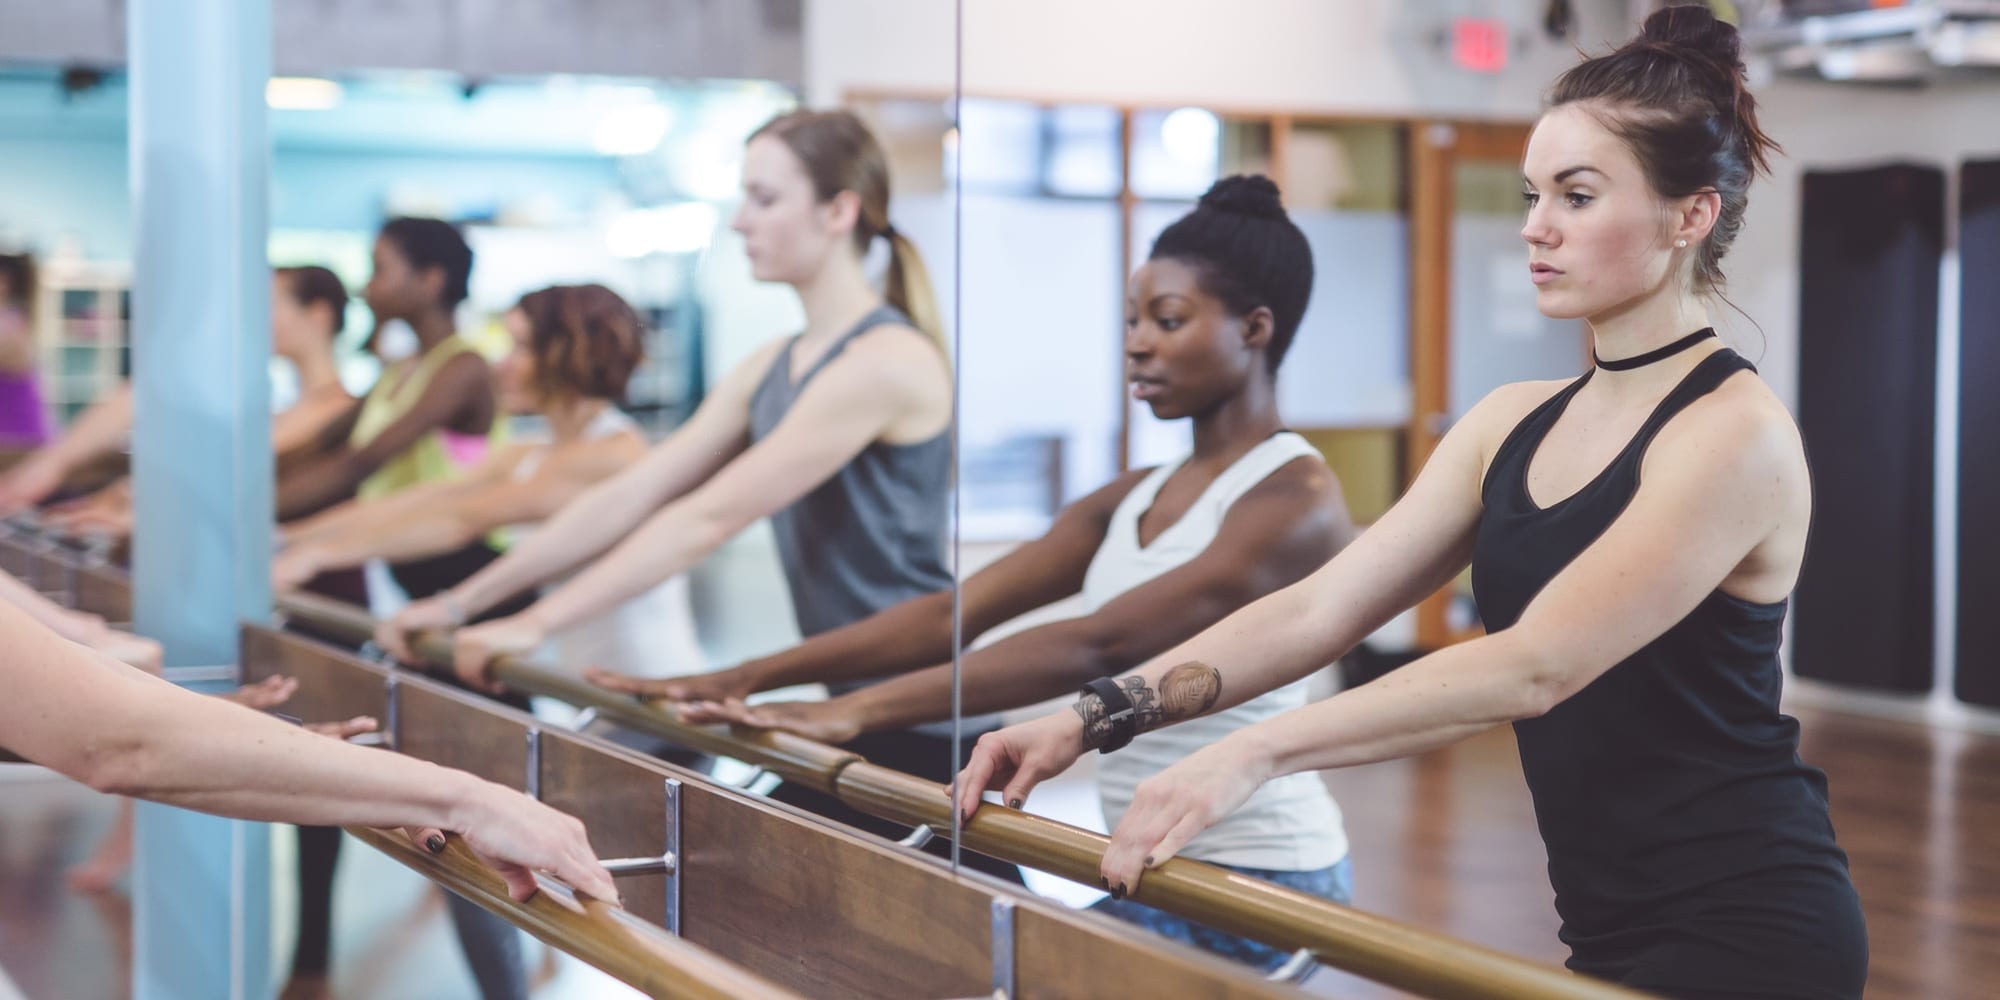 7 Benefits of Barre Workouts